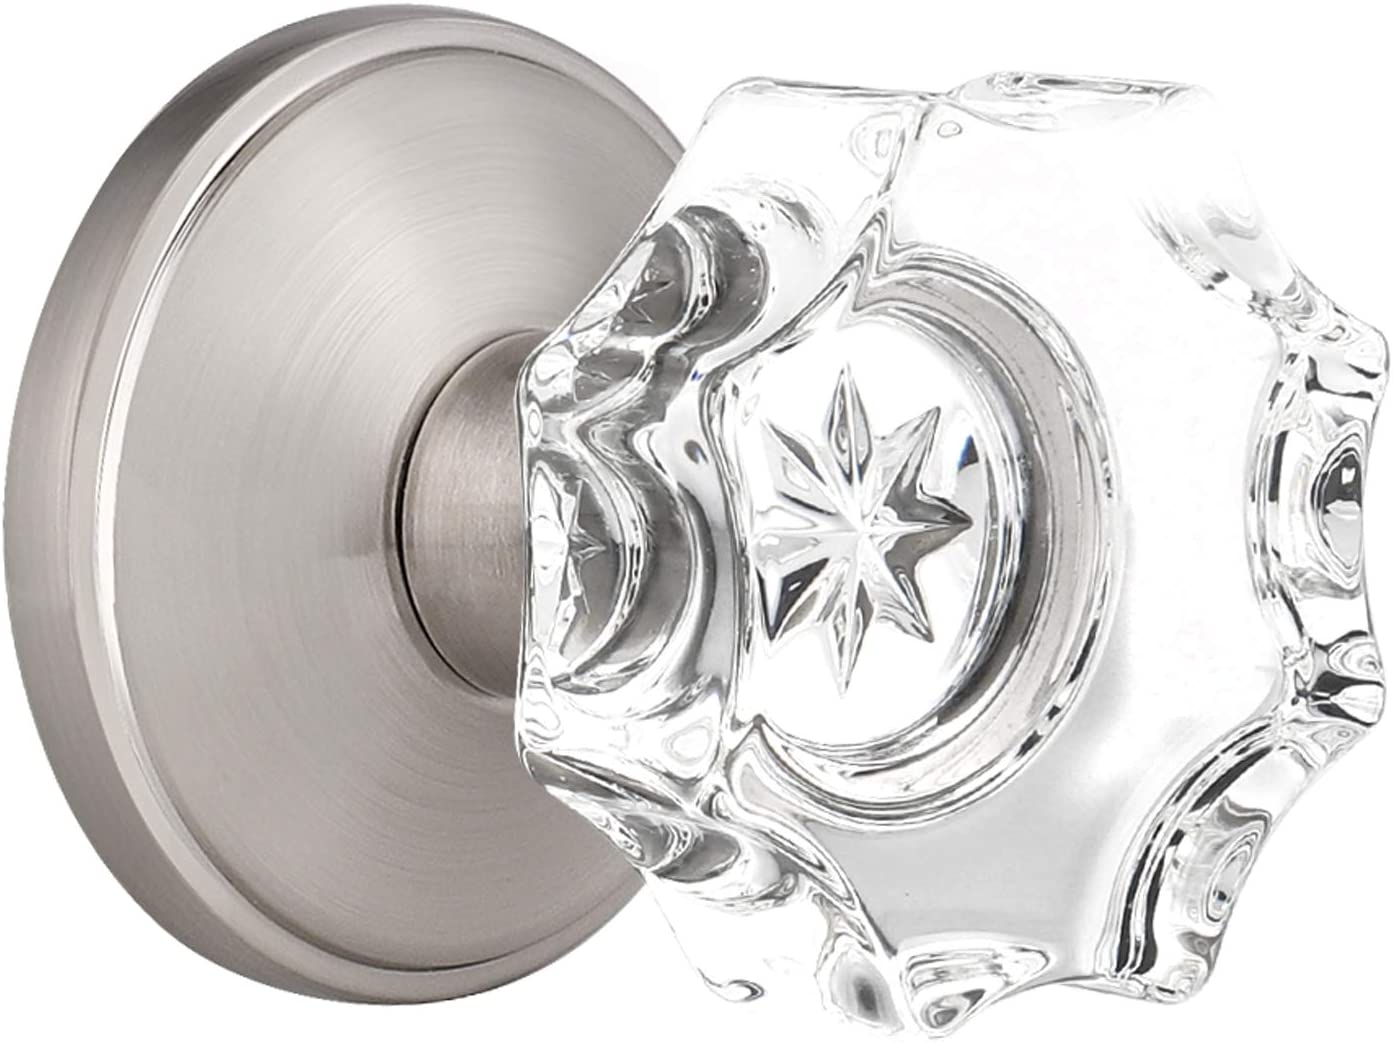 Pack Now on sale of 1 GOBEKOR Crystal Door Loc Passage Knob with Lock Glass Las Vegas Mall